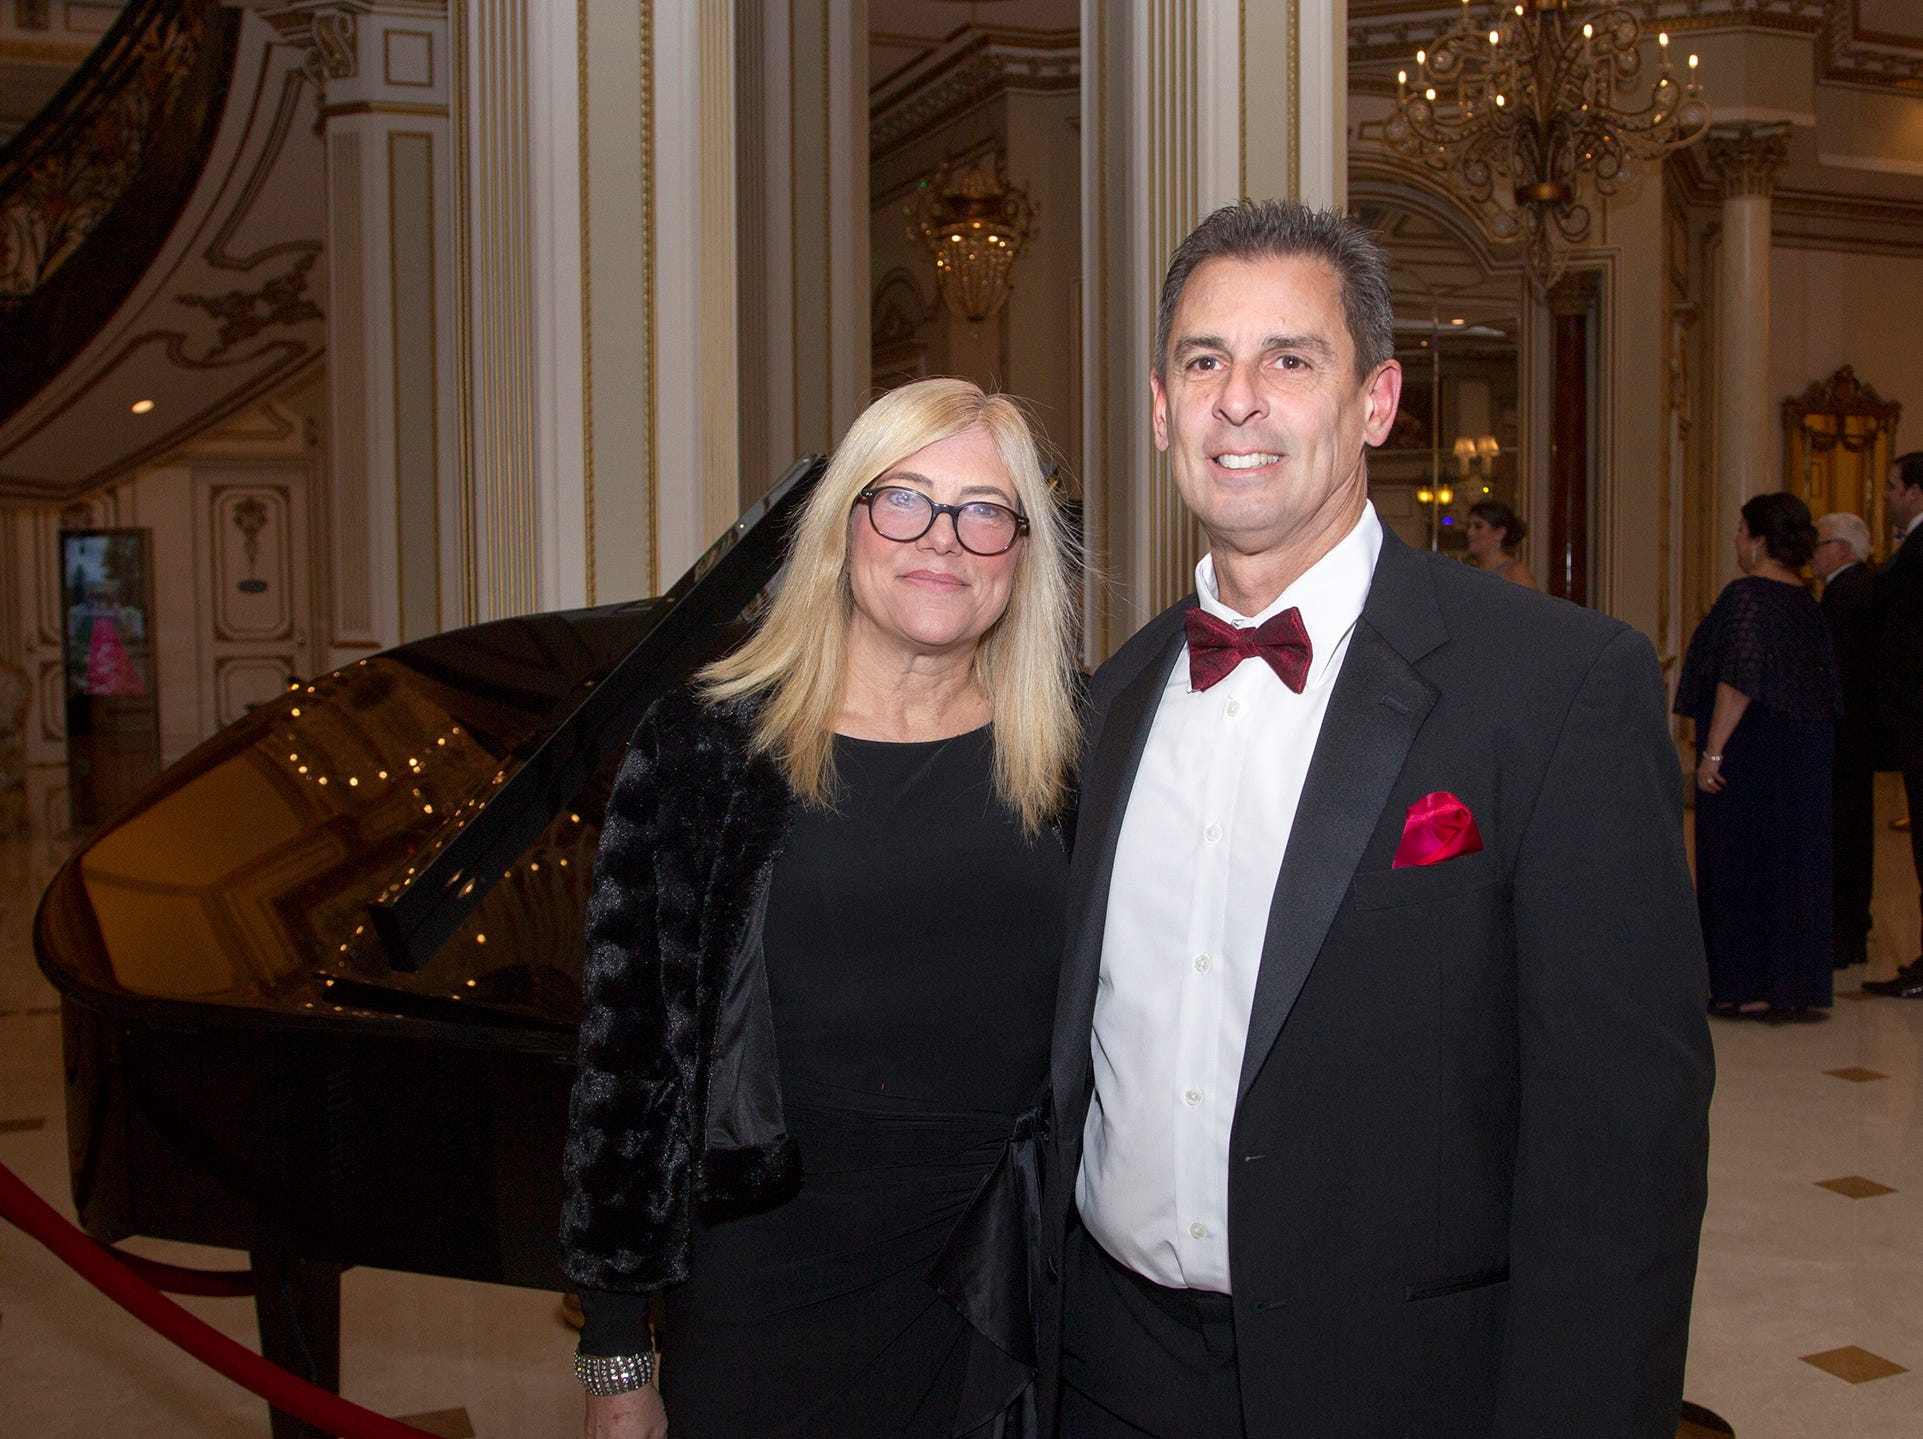 Jackie and John Aletta. The 72nd Annual Valley Ball gala at The Legacy Castle in Pompton Plains. 11/16/2018